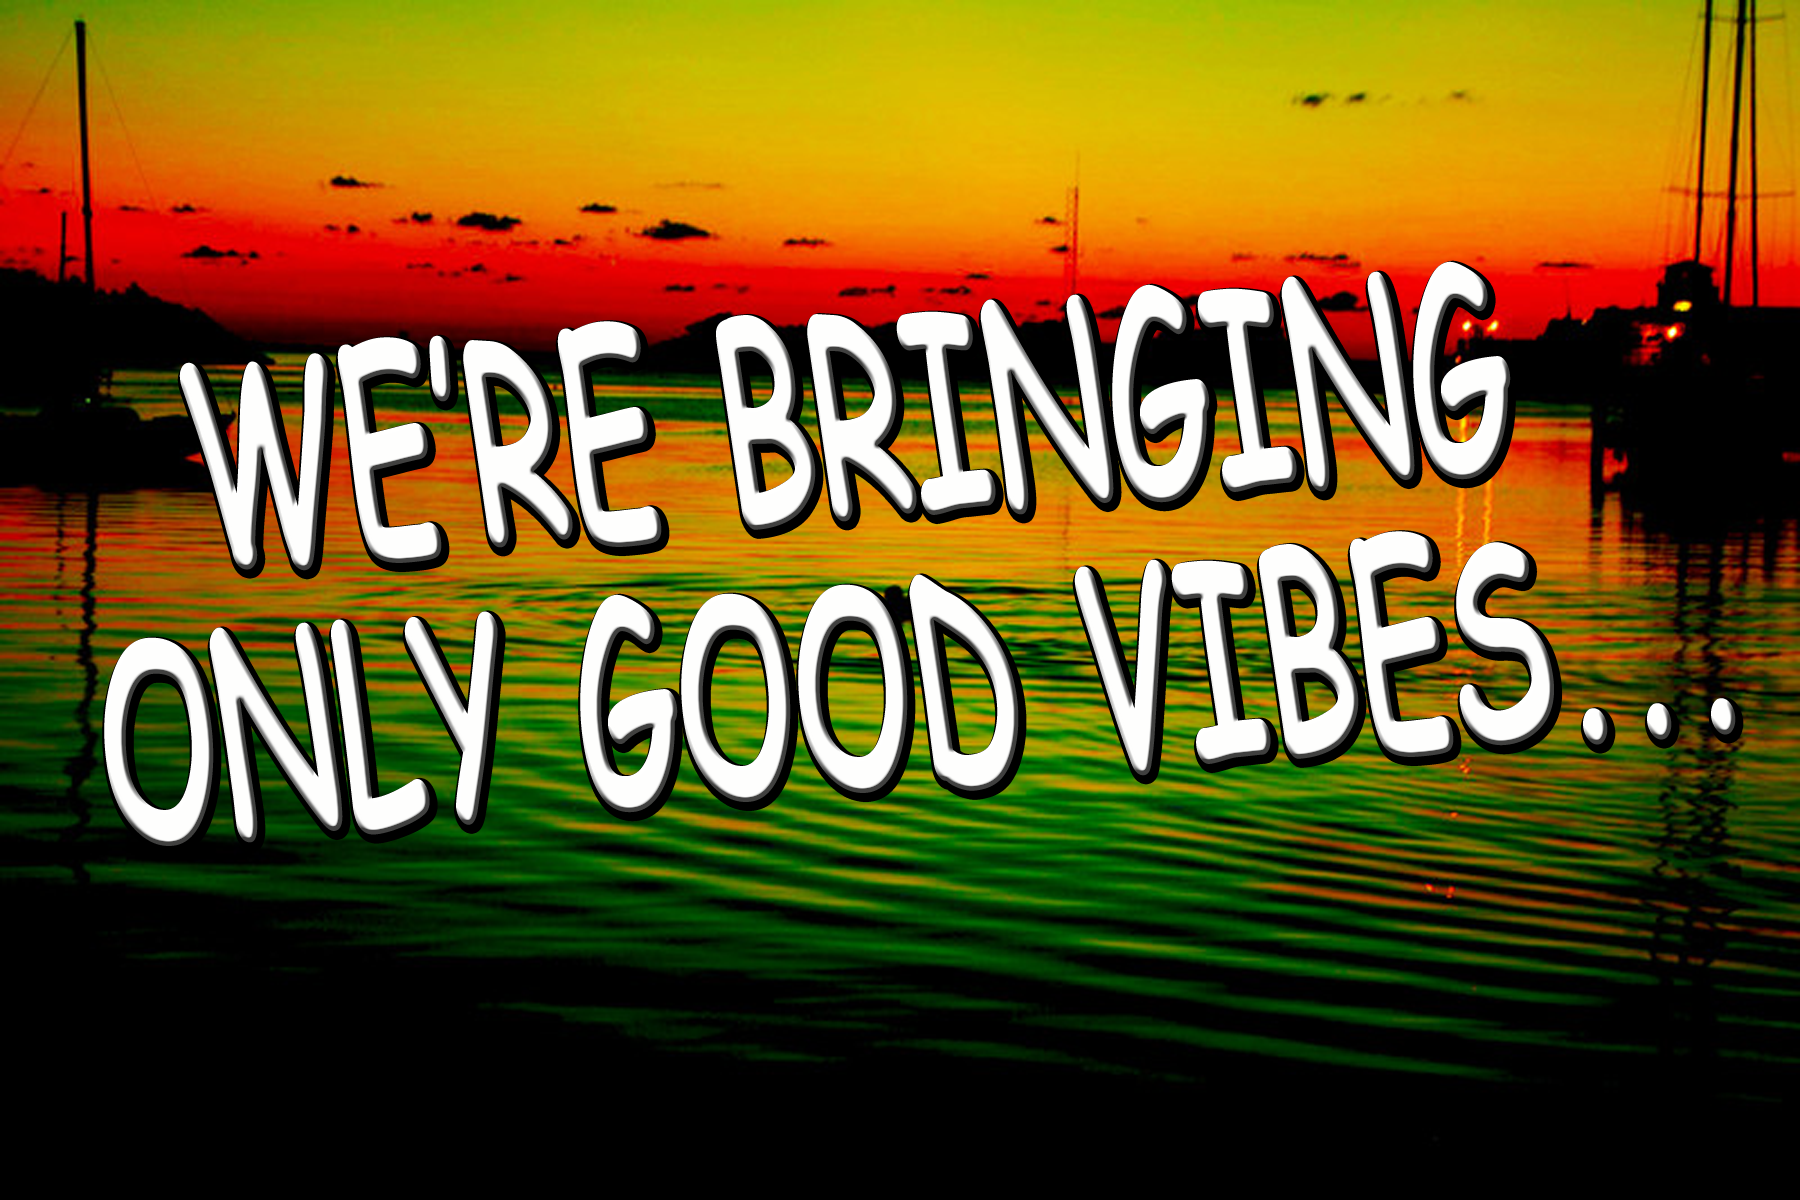 47 Good Vibes Wallpaper On Wallpapersafari